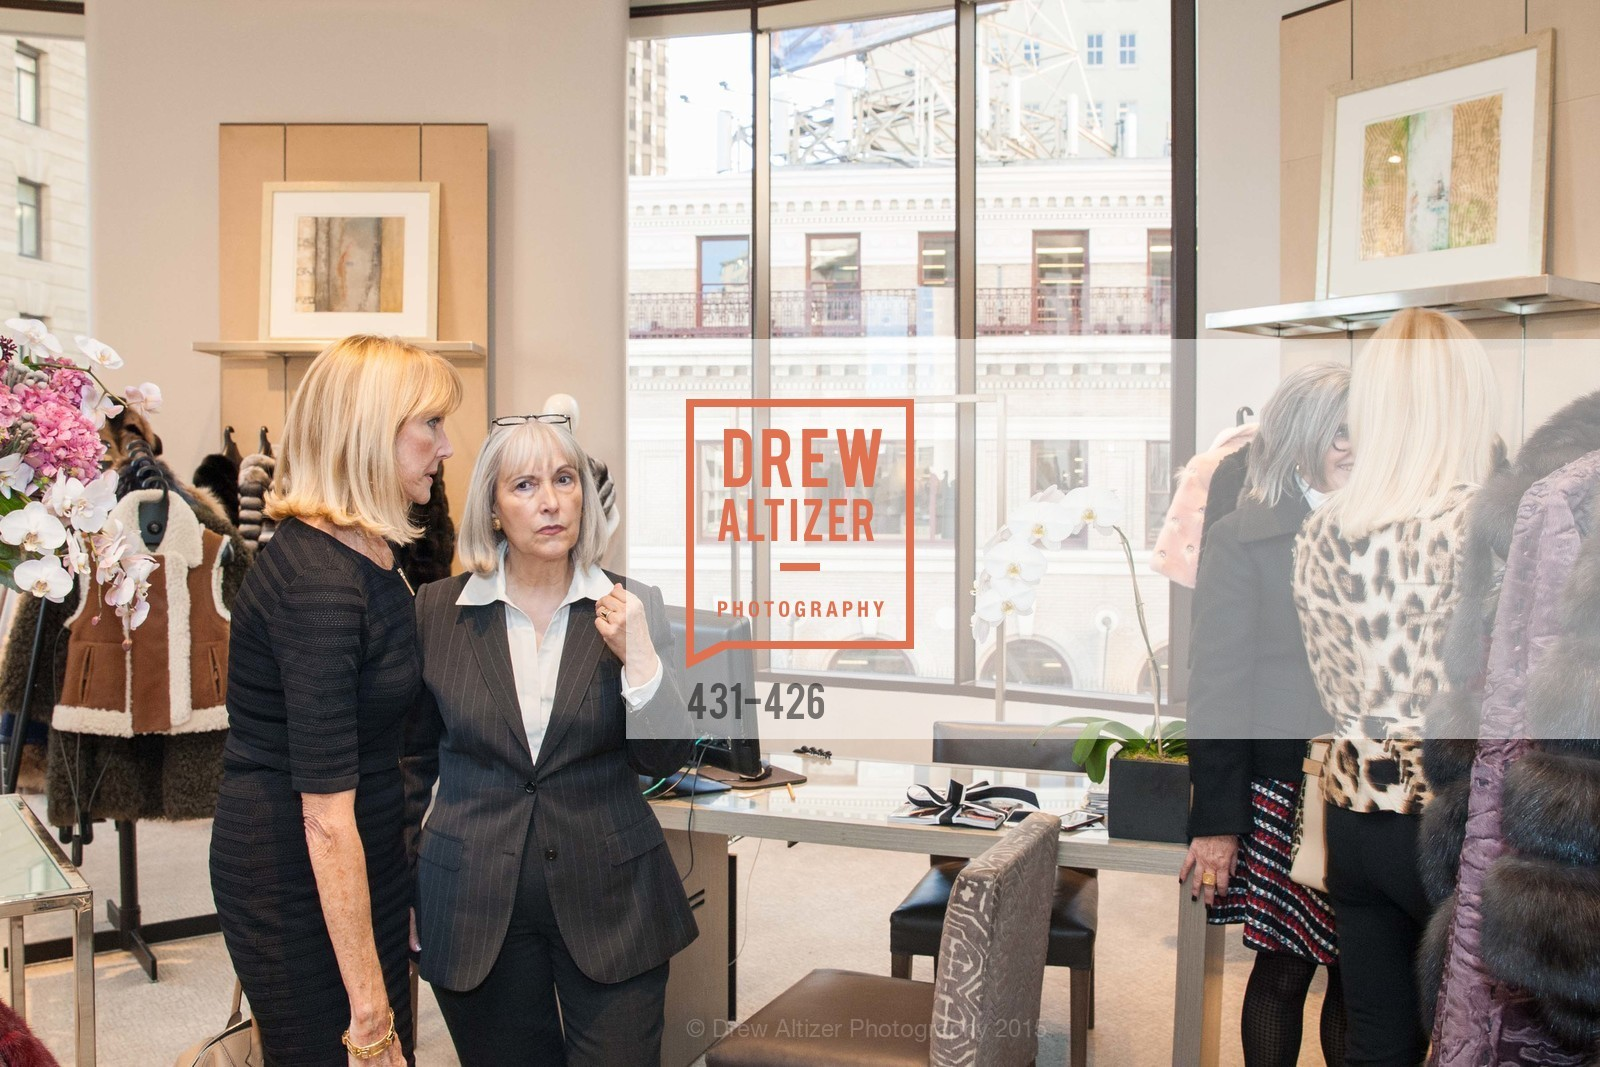 Extras, Rindi at Saks Fur Salon, October 29th, 2015, Photo,Drew Altizer, Drew Altizer Photography, full-service agency, private events, San Francisco photographer, photographer california